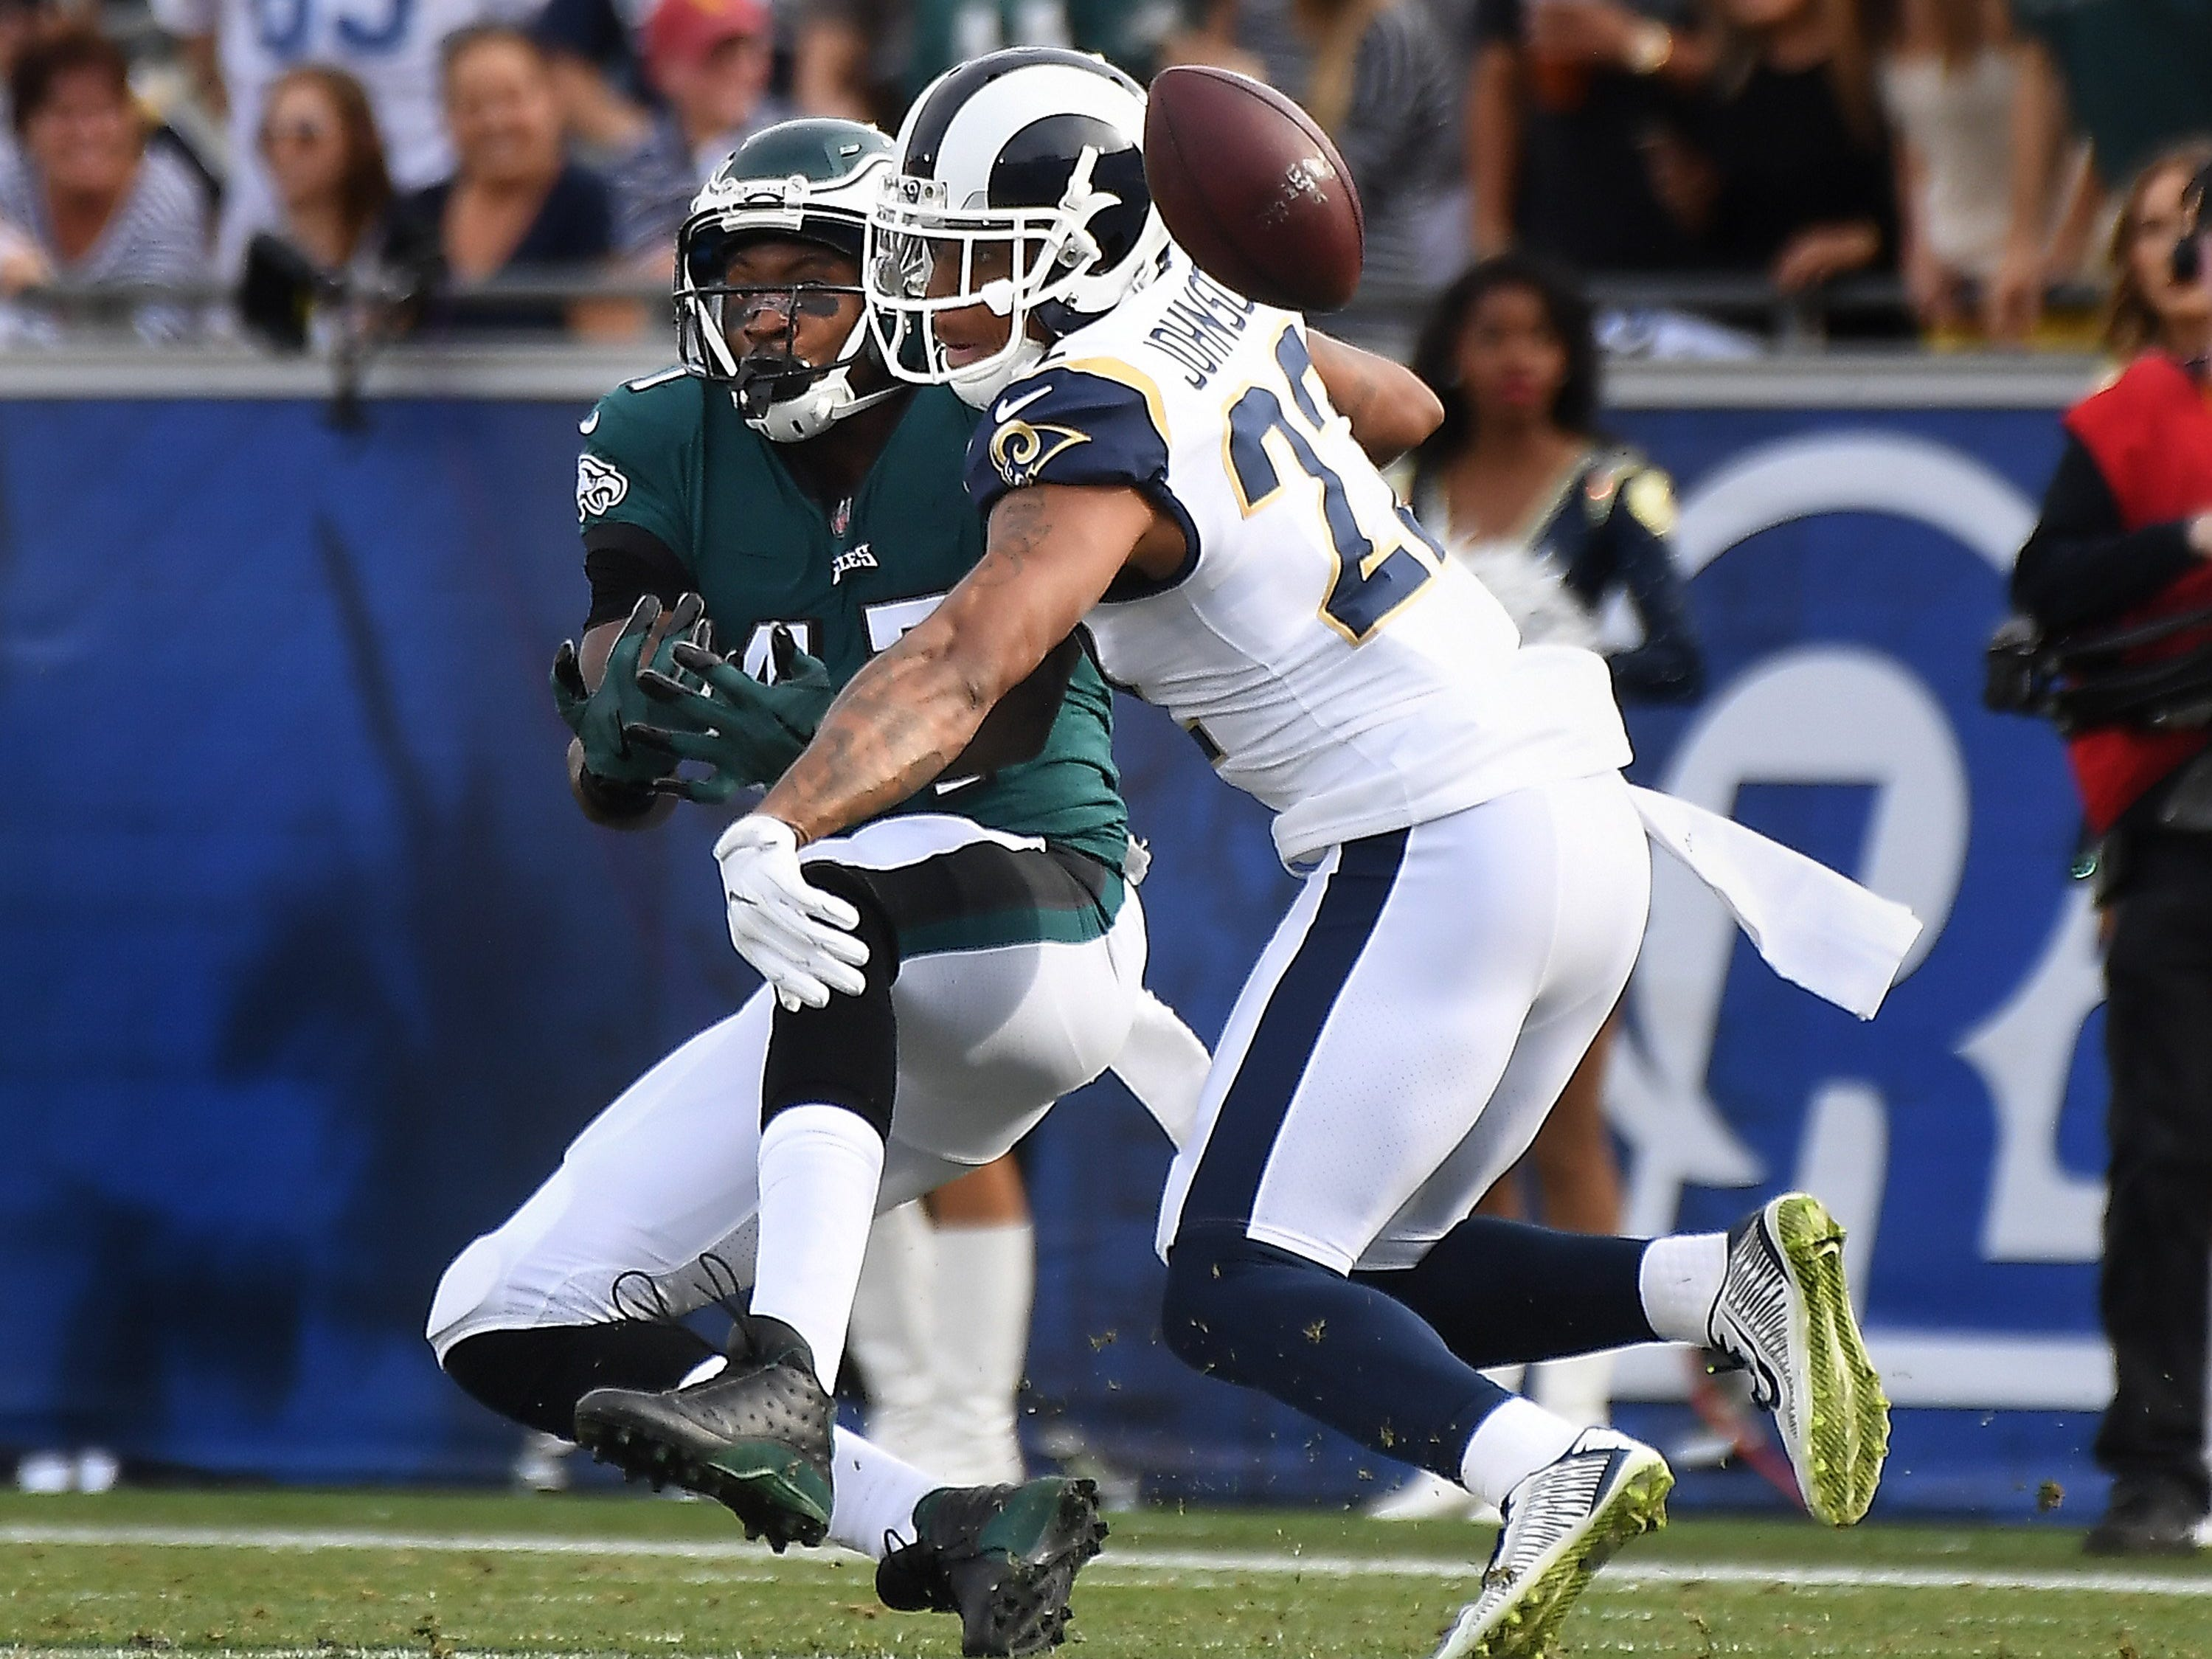 1. Philadelphia Eagles at Los Angeles Rams, Week 15, 8:20 p.m. Dec. 16, NBC: This is a rematch of last year's Week 14 meeting, when Wentz went down for the season and Nick Foles began his march into Philadelphia lore along with cheesesteaks, Rocky Balboa and the Liberty Bell.